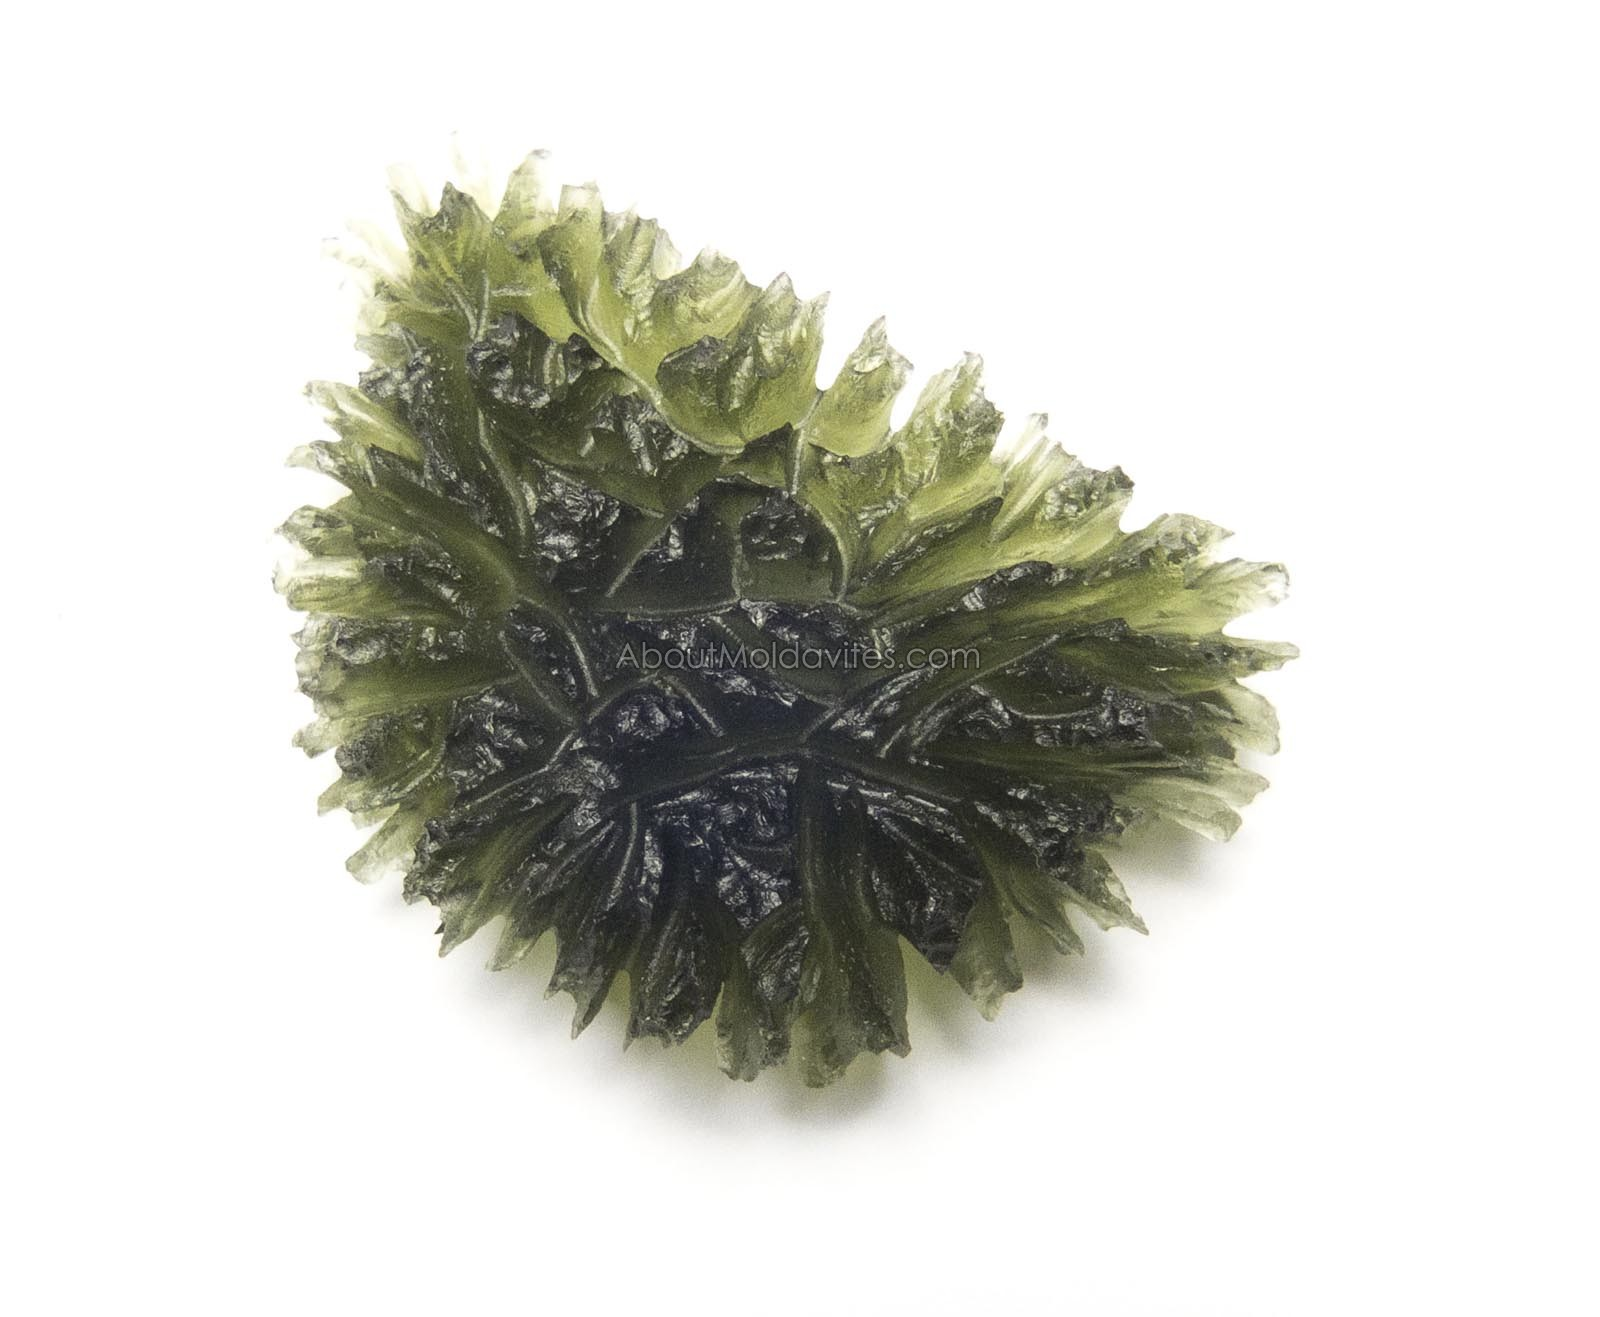 Angel chime Moldavite from Besednice